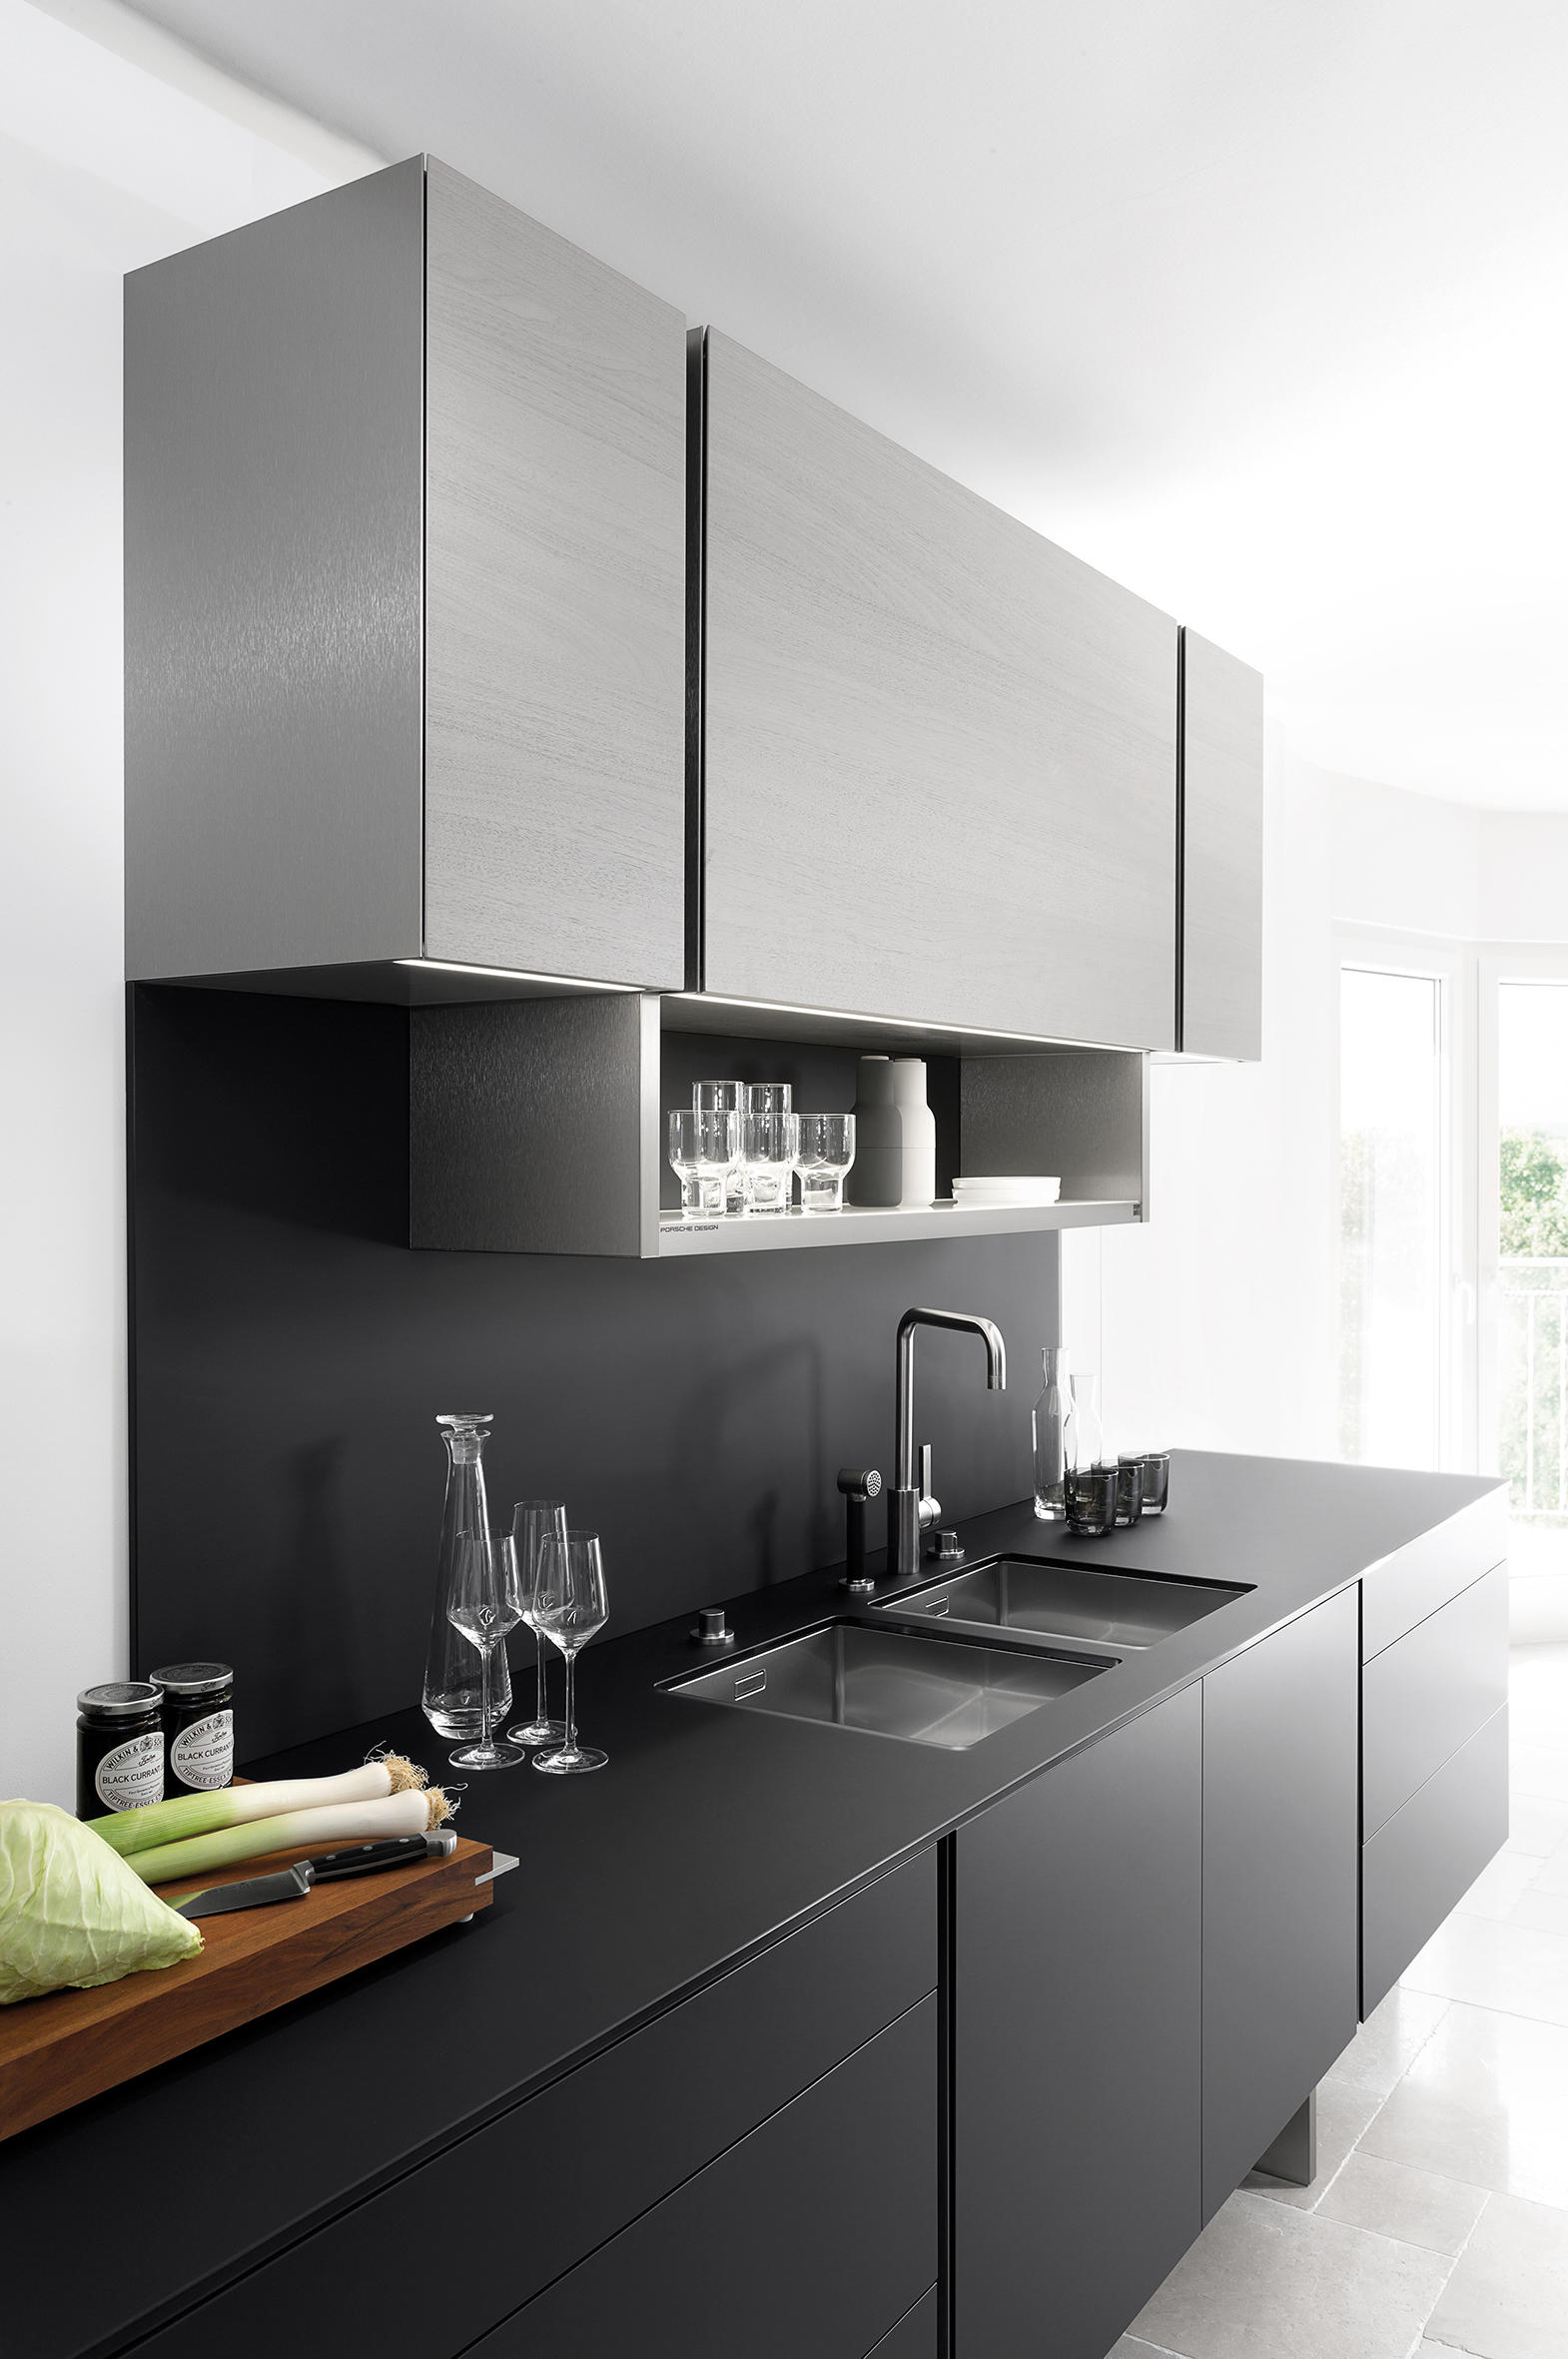 Porsche Design-küche P7340 P7350 Design By Studio F A Porsche Fitted Kitchens